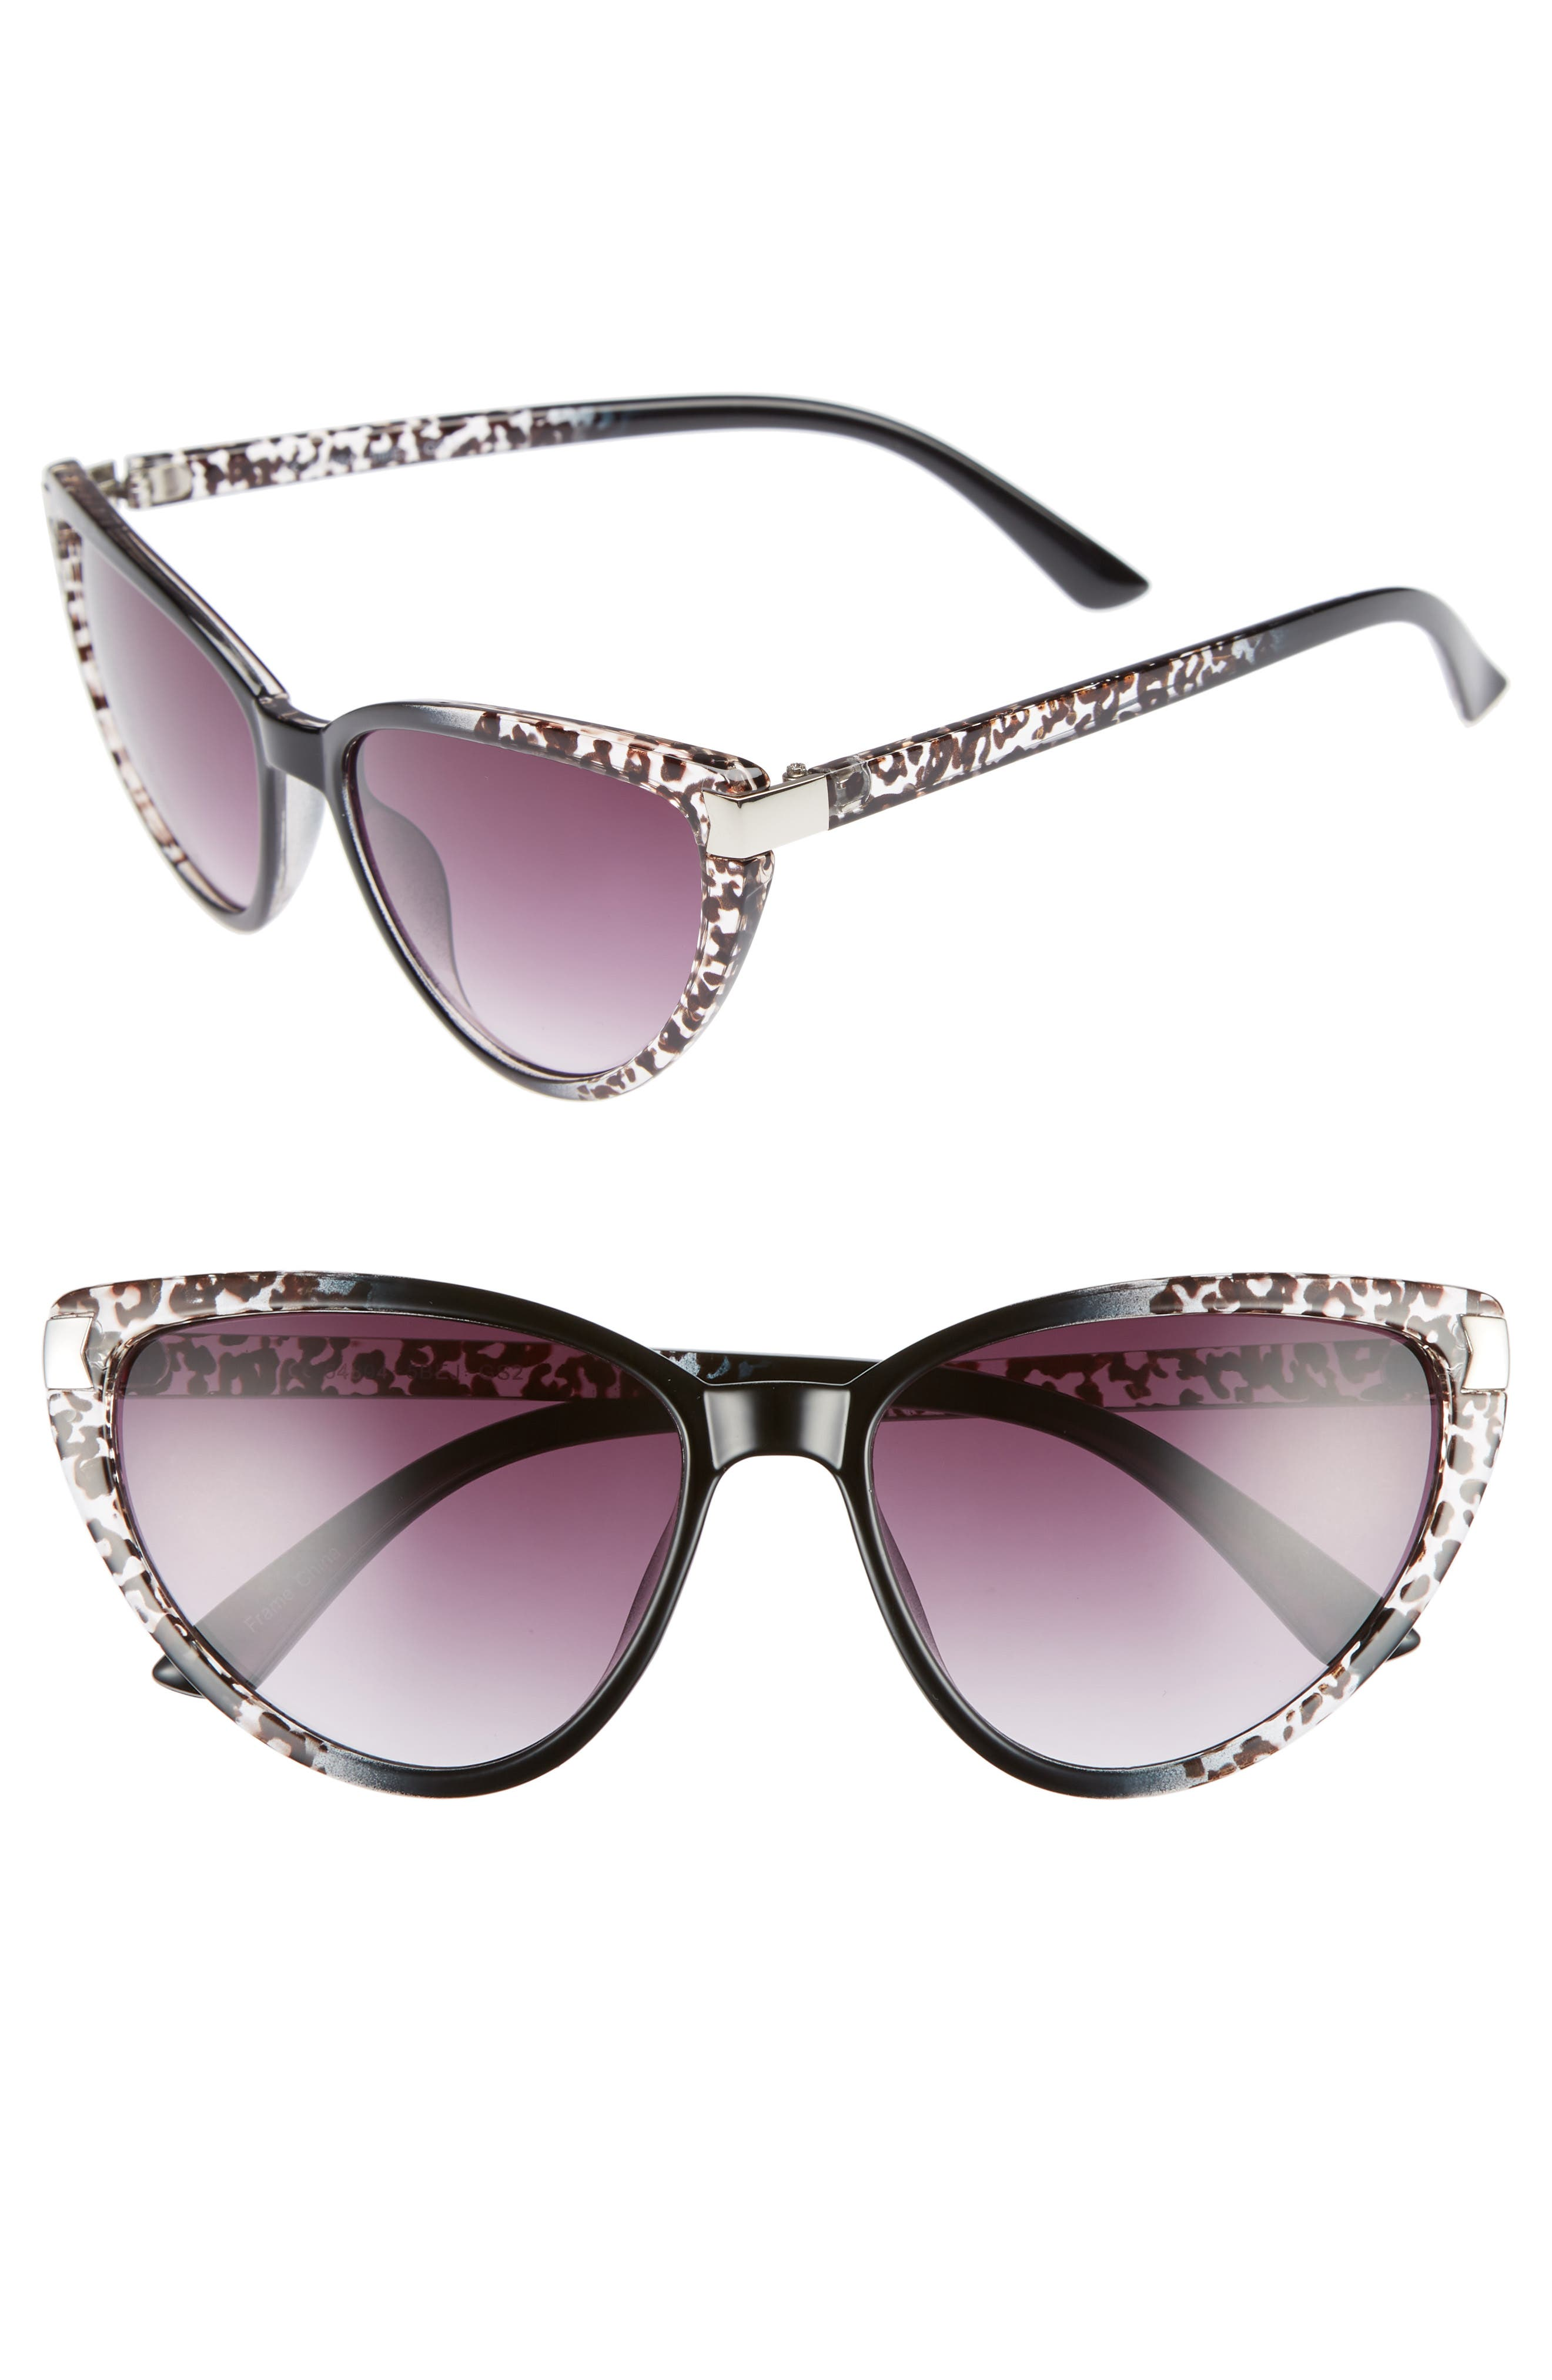 57mm Spotted Cat Eye Sunglasses,                         Main,                         color, Black/ White